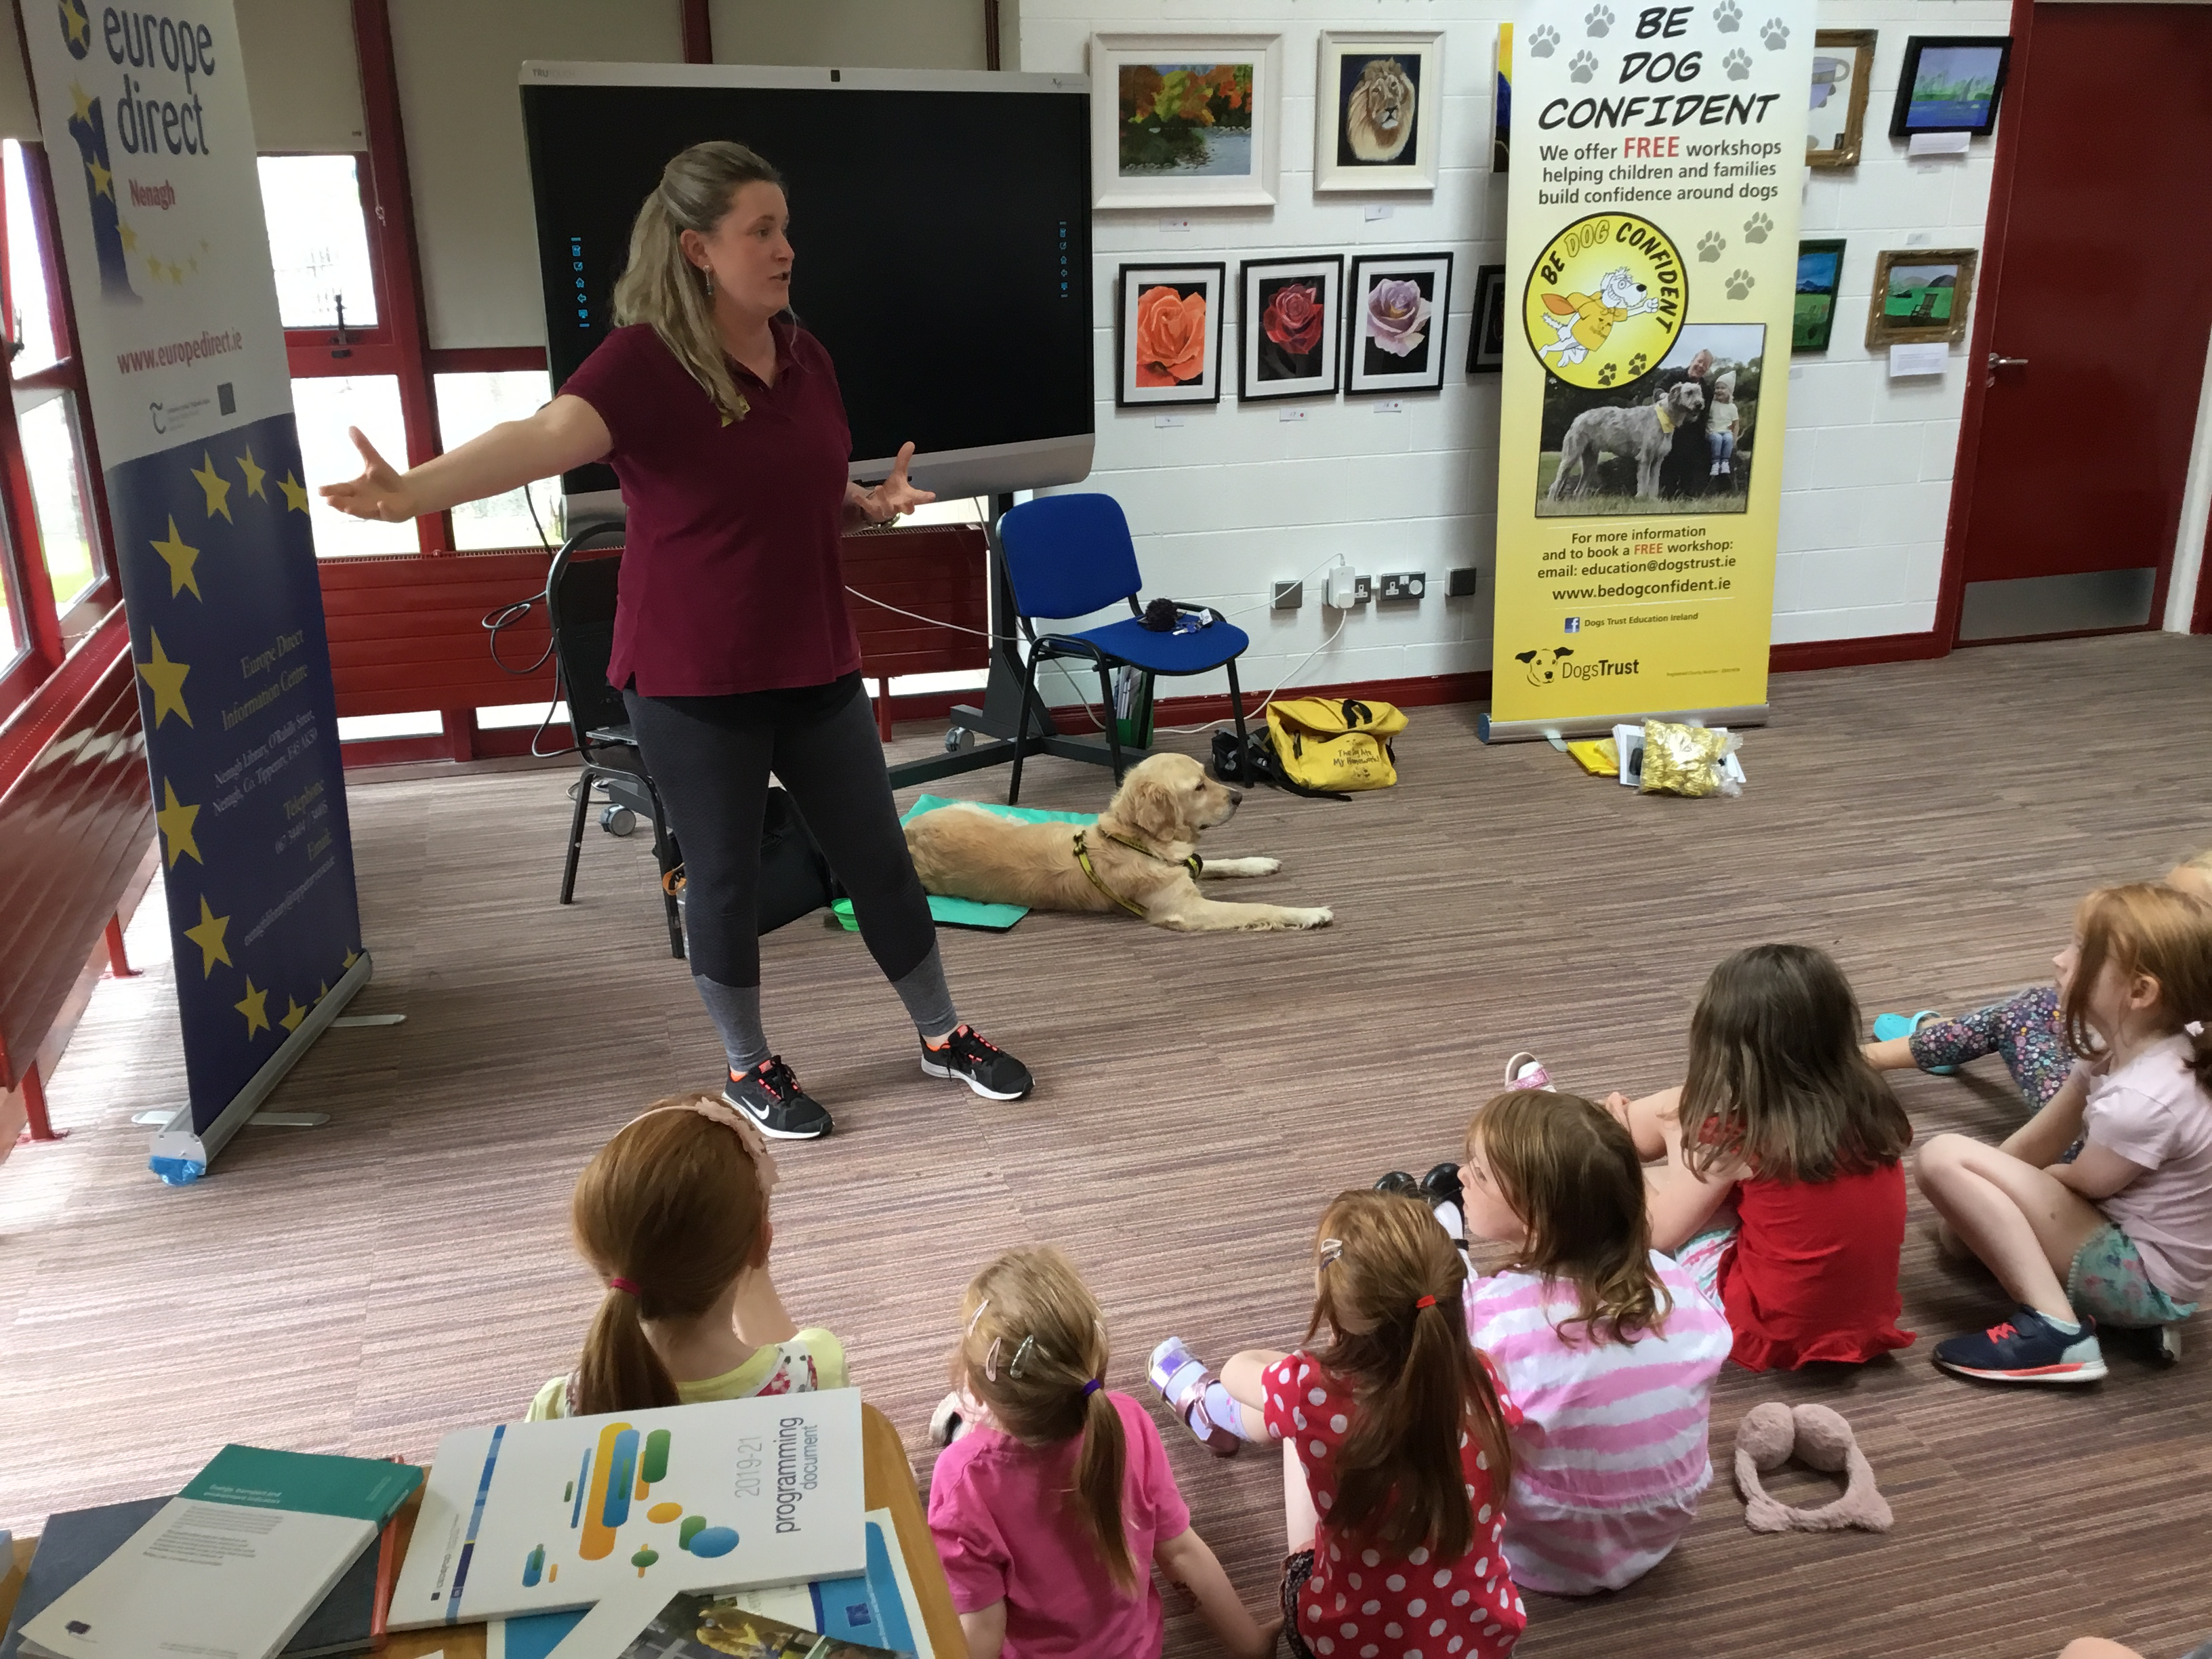 Maeve And Penny From Dogs Trust Ireland In Nenagh Library